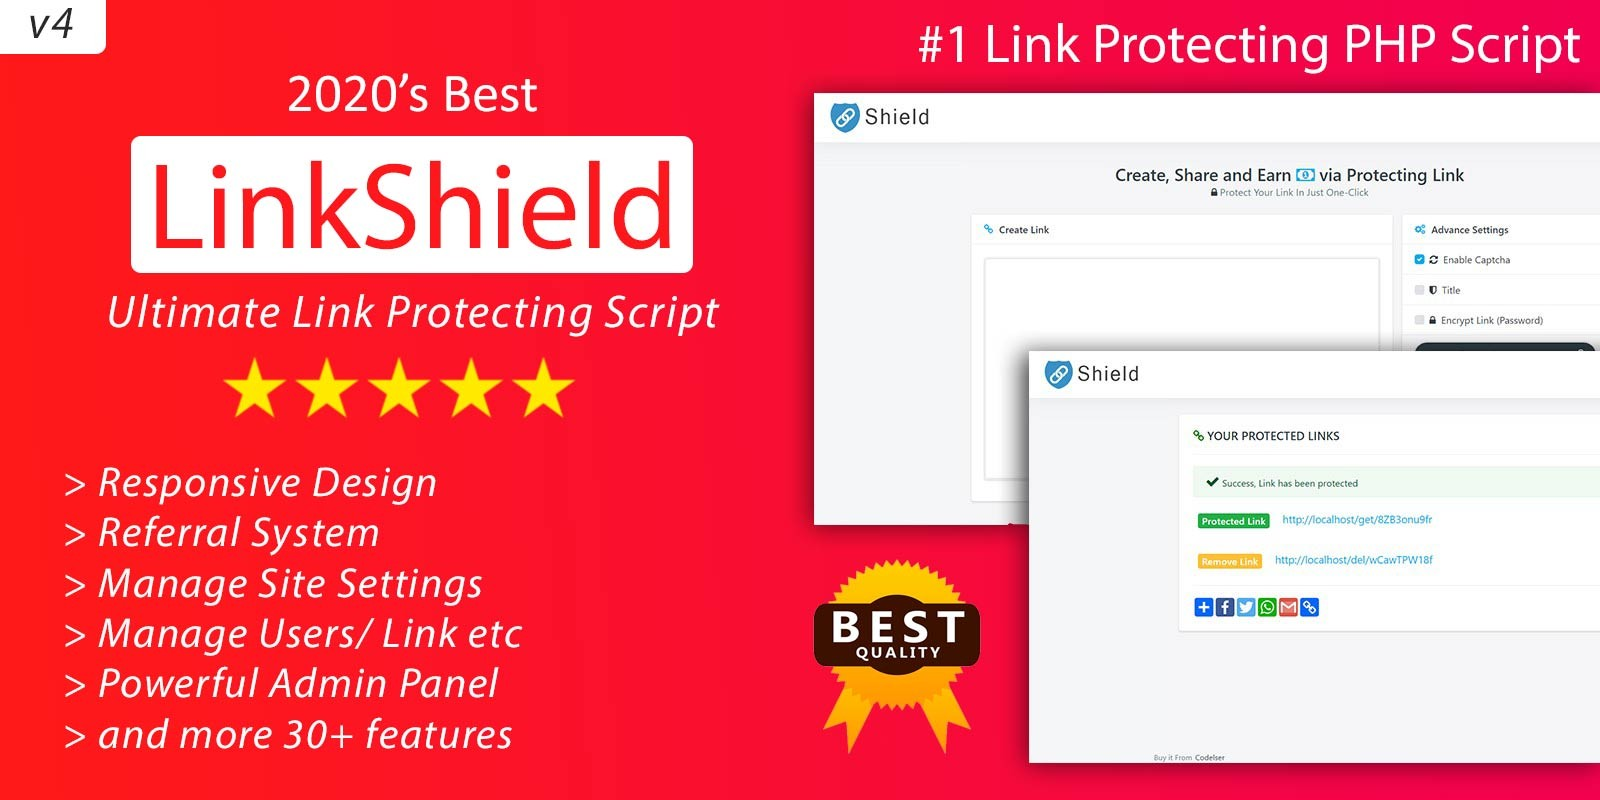 linkshield-features.jpg